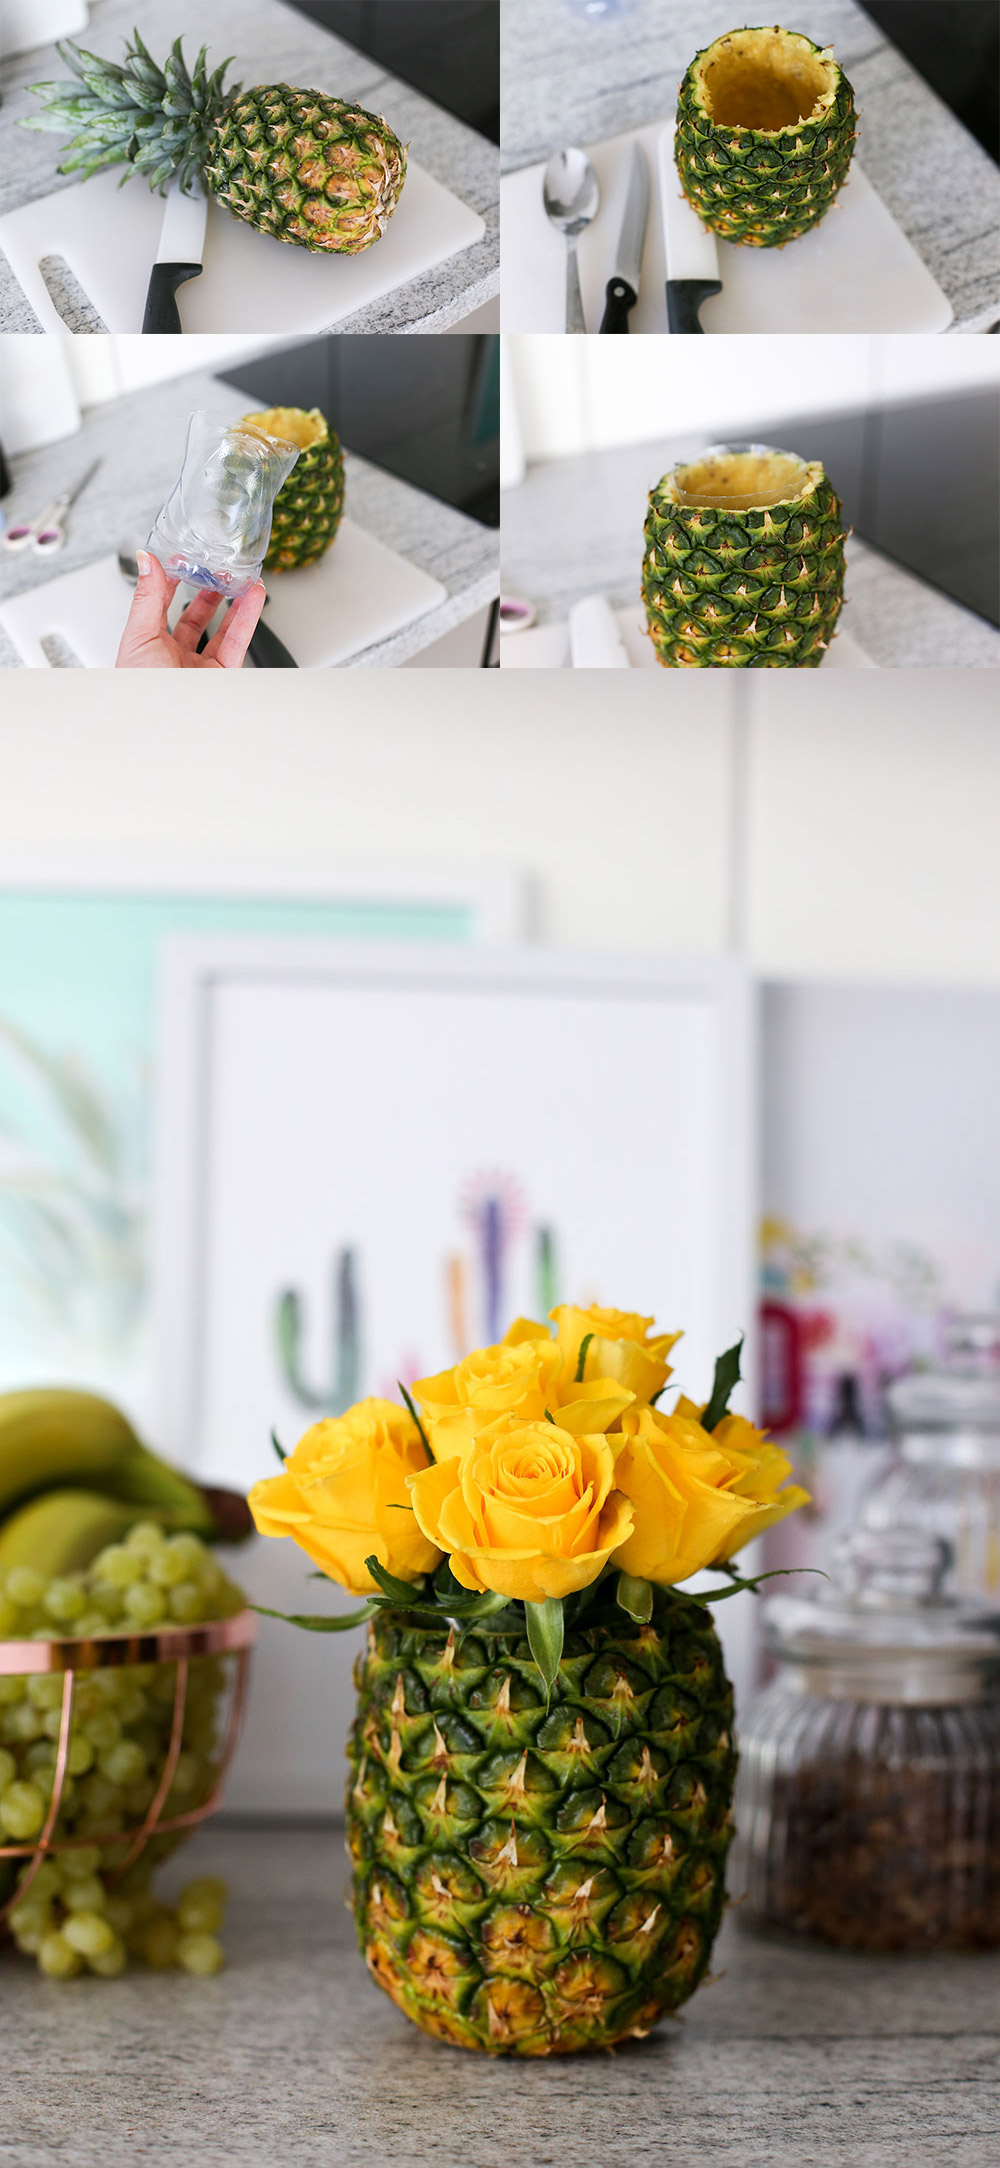 DIY Ananas Vase, Rose DIY, Pimp my Kitchen, Küche verschönern, Küchen Hacks, Do It Yourself, Interior Blog, Magazin, whoismocca.com